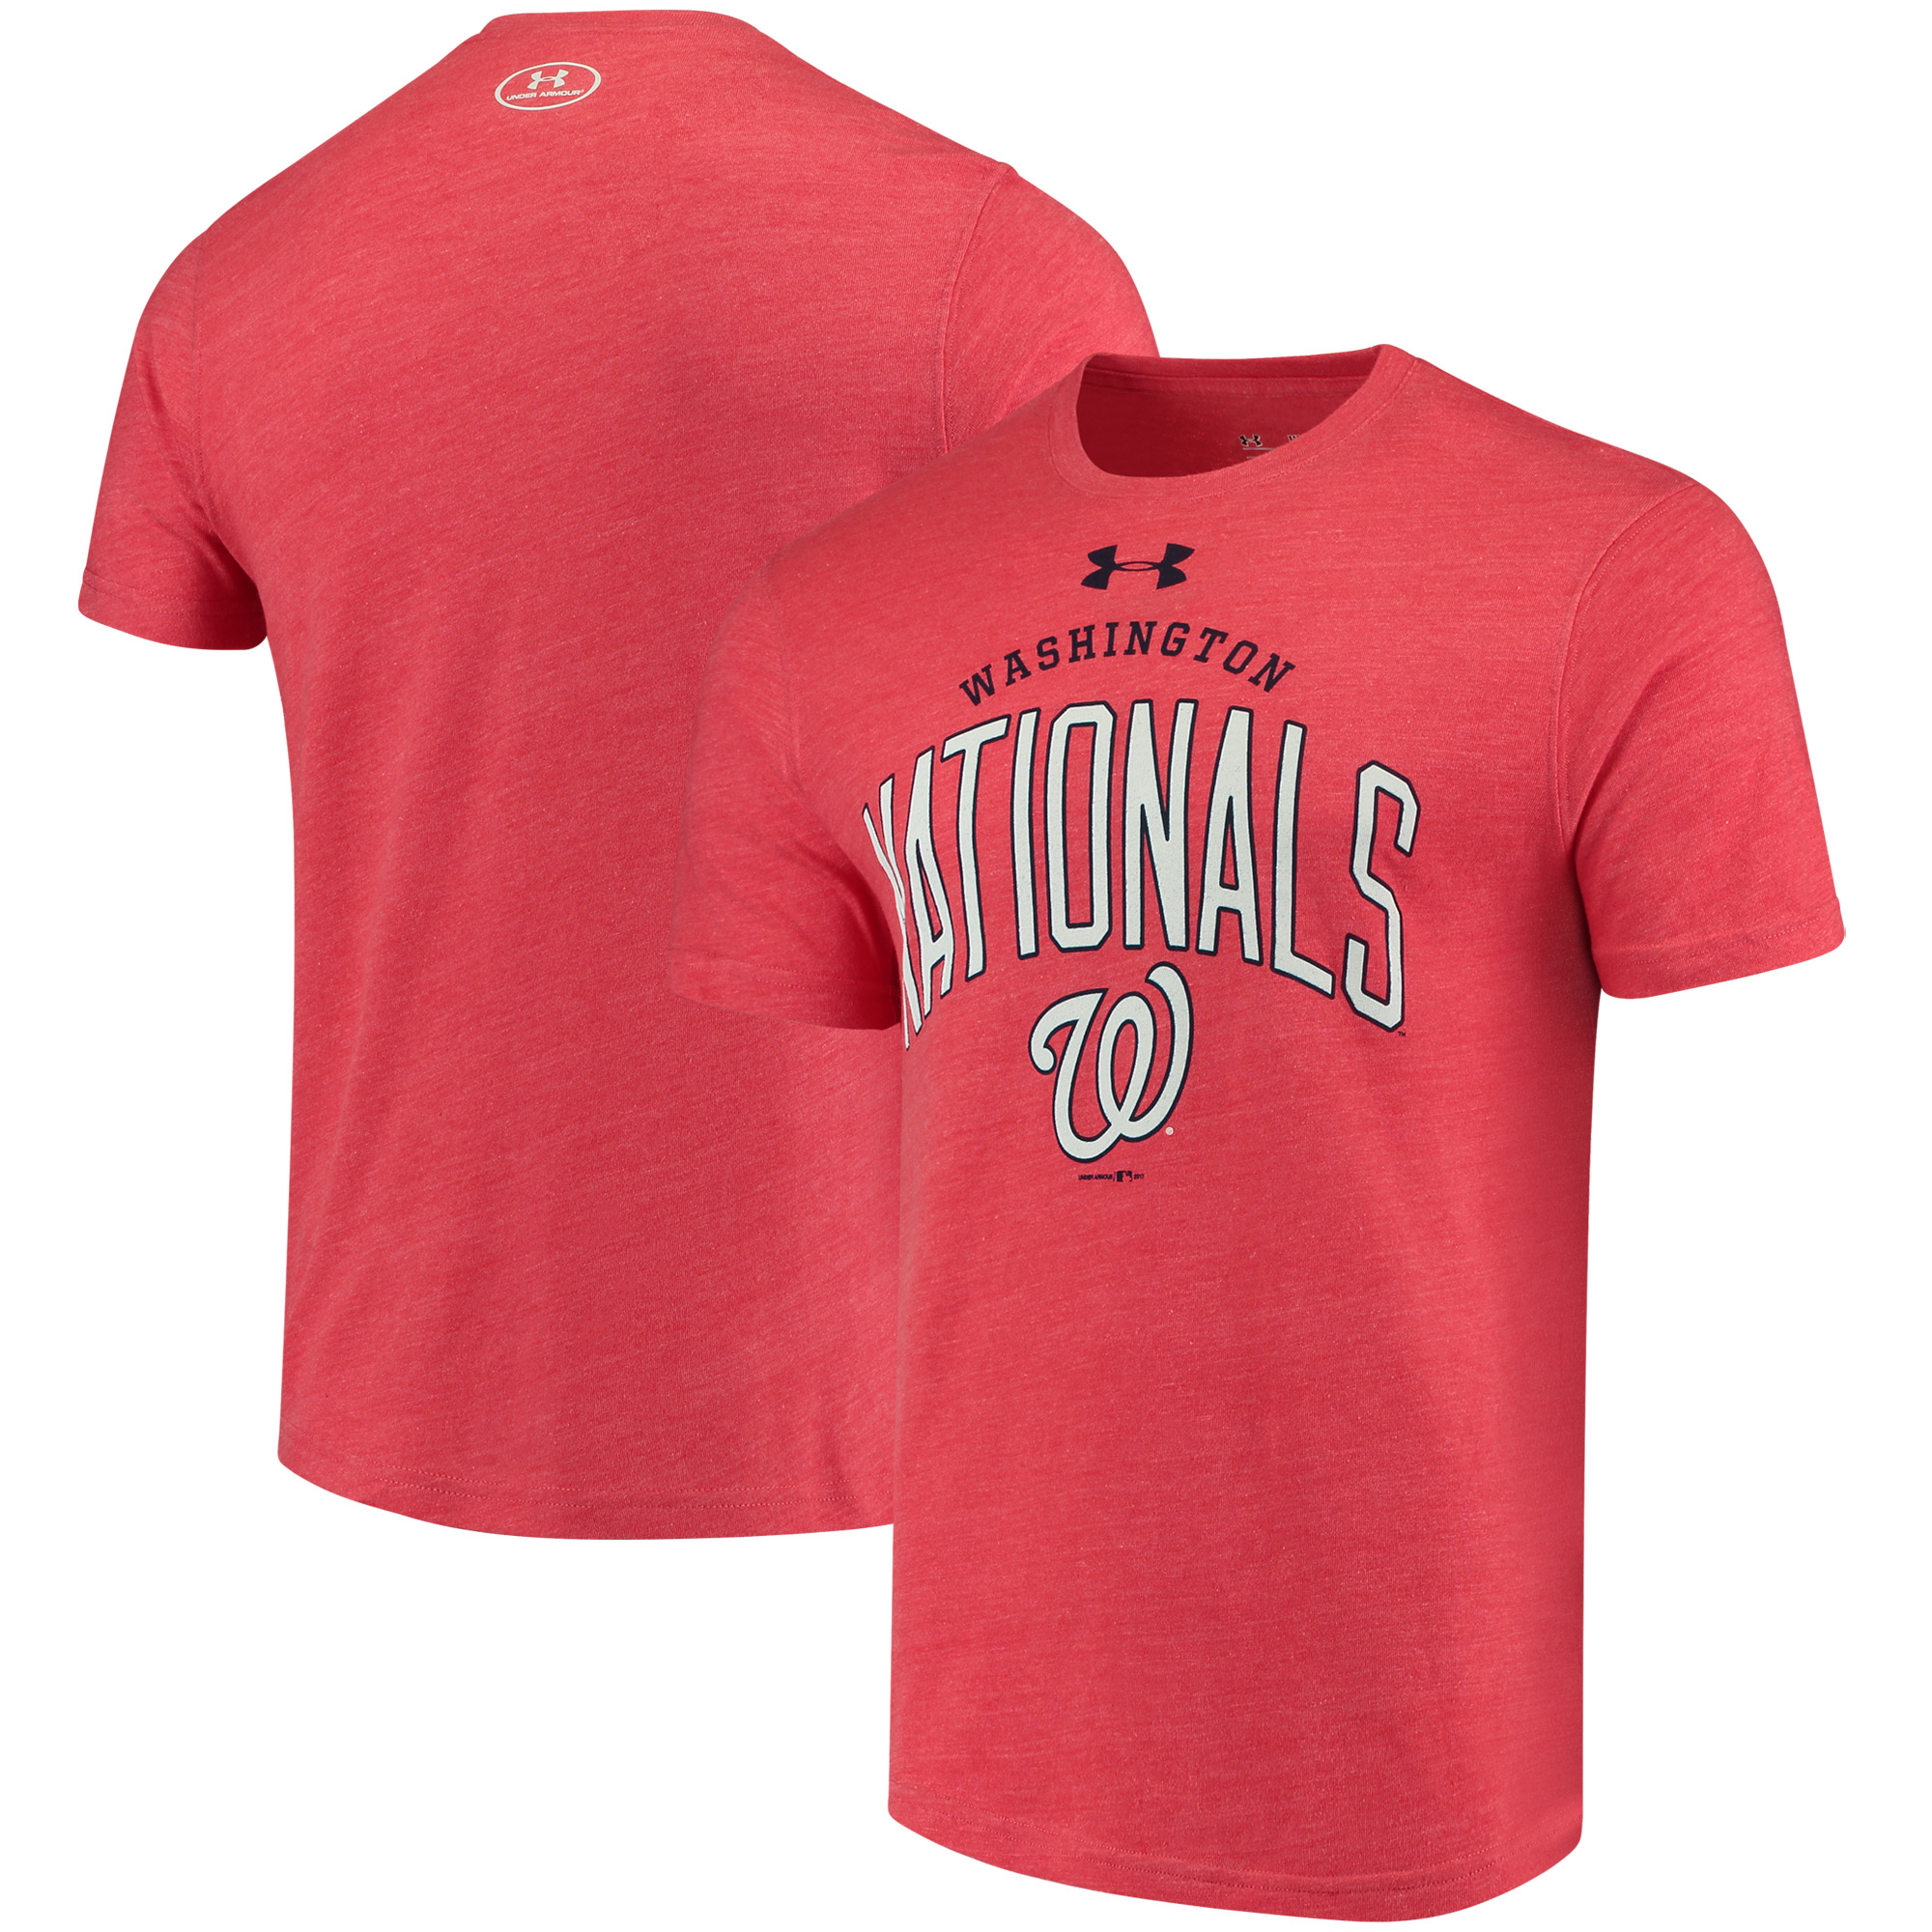 Washington Nationals Under Armour Team Logo Tri-Blend T-Shirt - Red